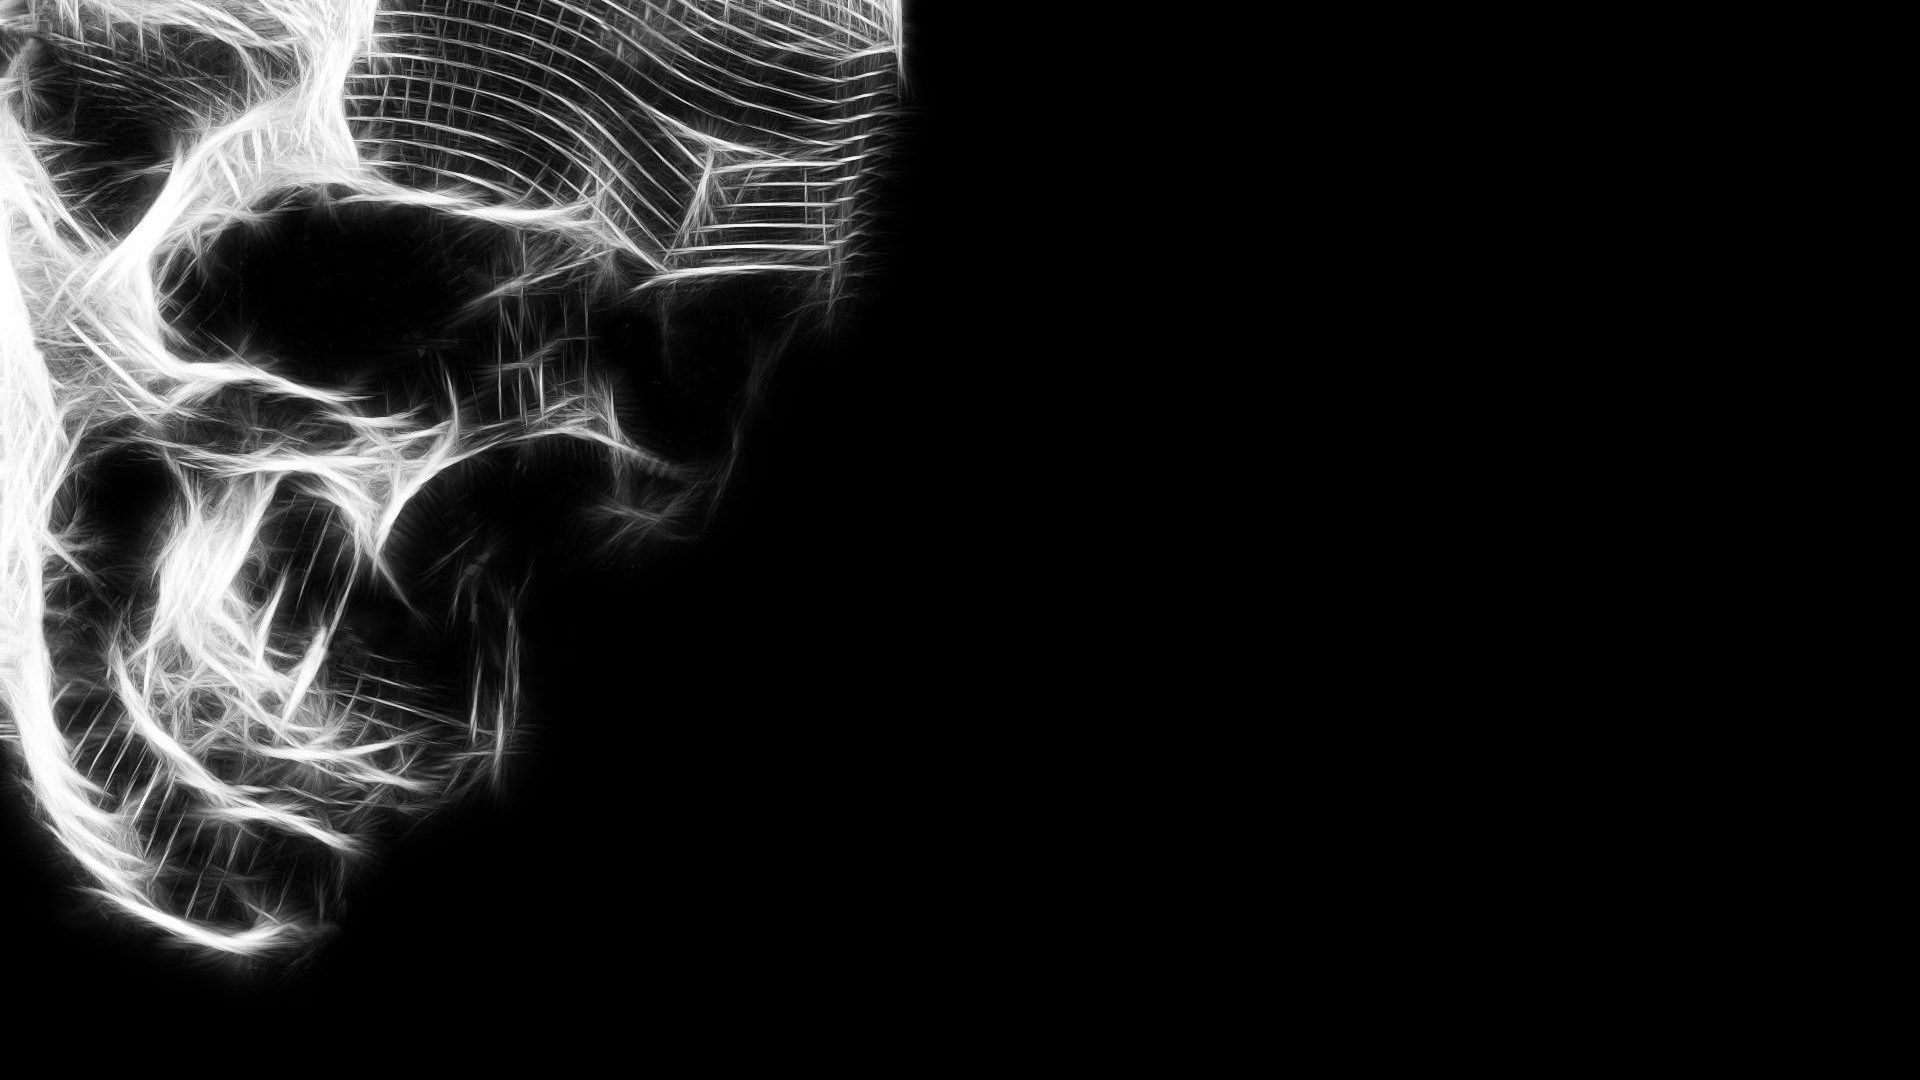 Skull Hd Widescreen Wallpapers For Laptop Skull Wallpaper Black And White Wallpaper Dark Wallpaper